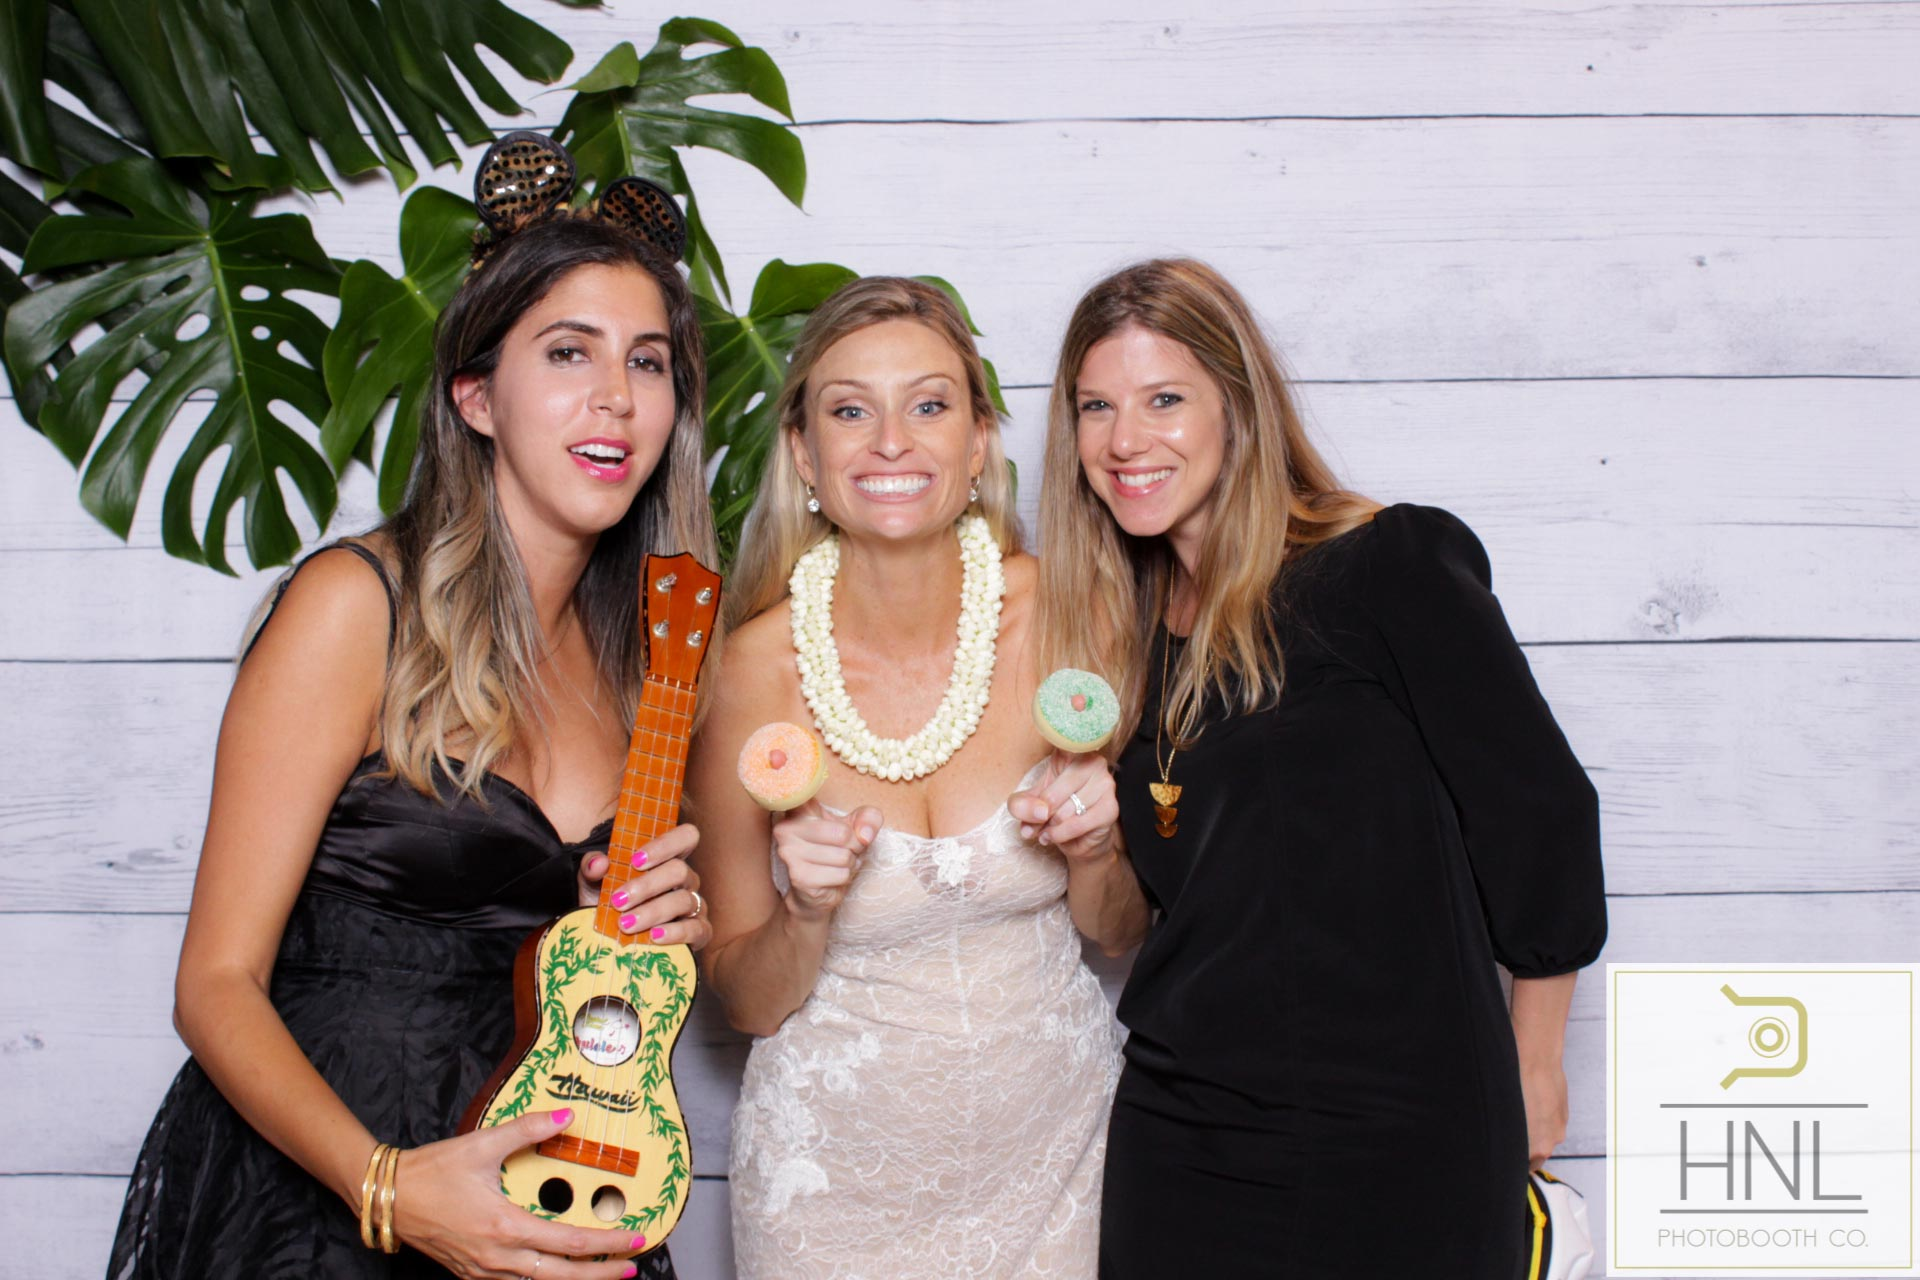 modern photo booth rentals for oahu hawaii honolulu